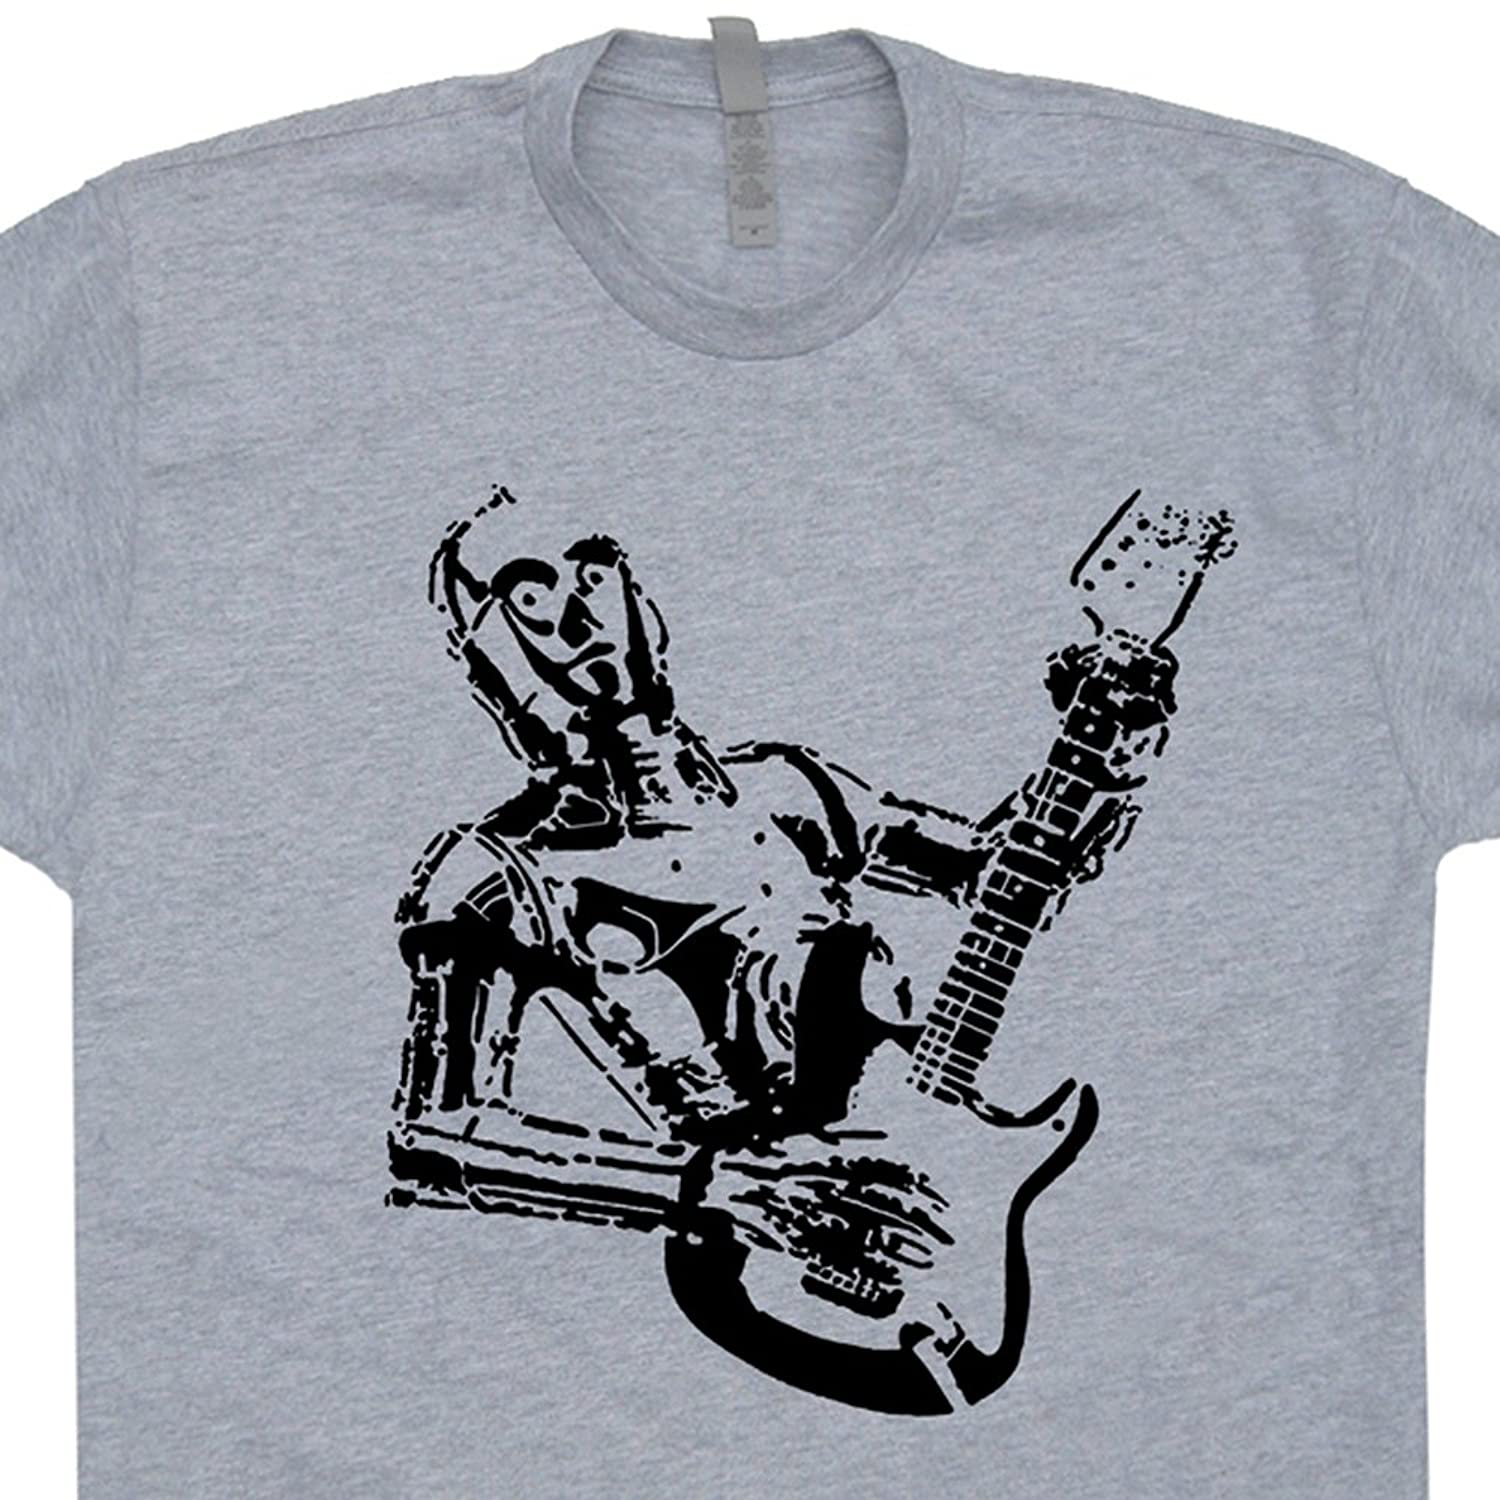 Robot Guitar T Shirt Bass Amp Shirts Robot Playing Electric Rock Band 80s Tee Vintage Guitarist